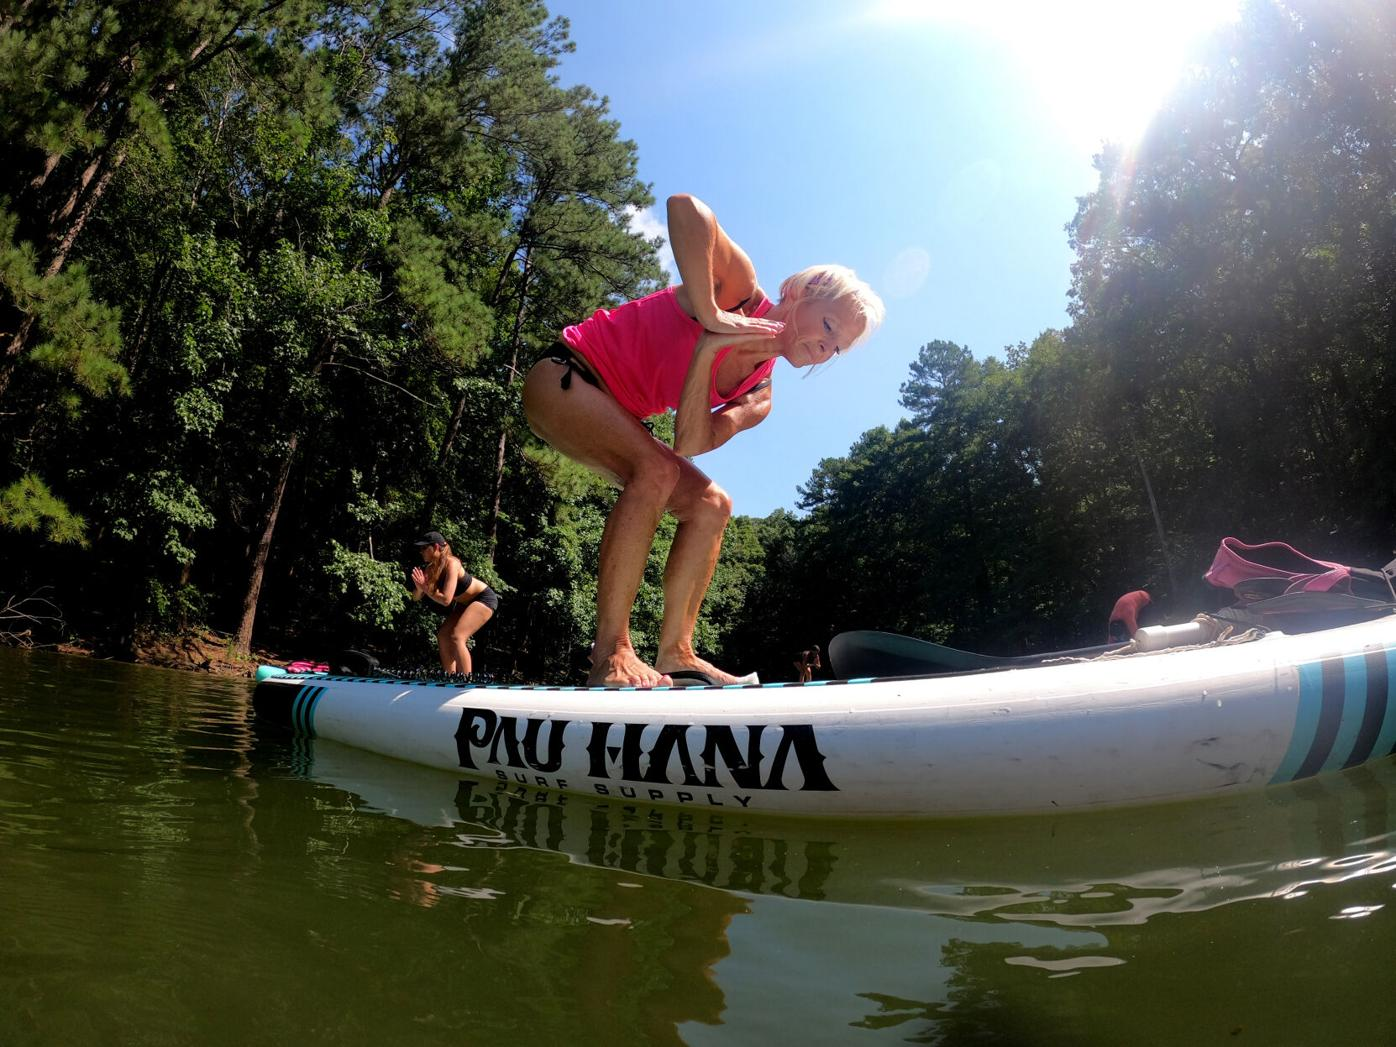 Standup paddleboard yoga grows in popularity during pandemic